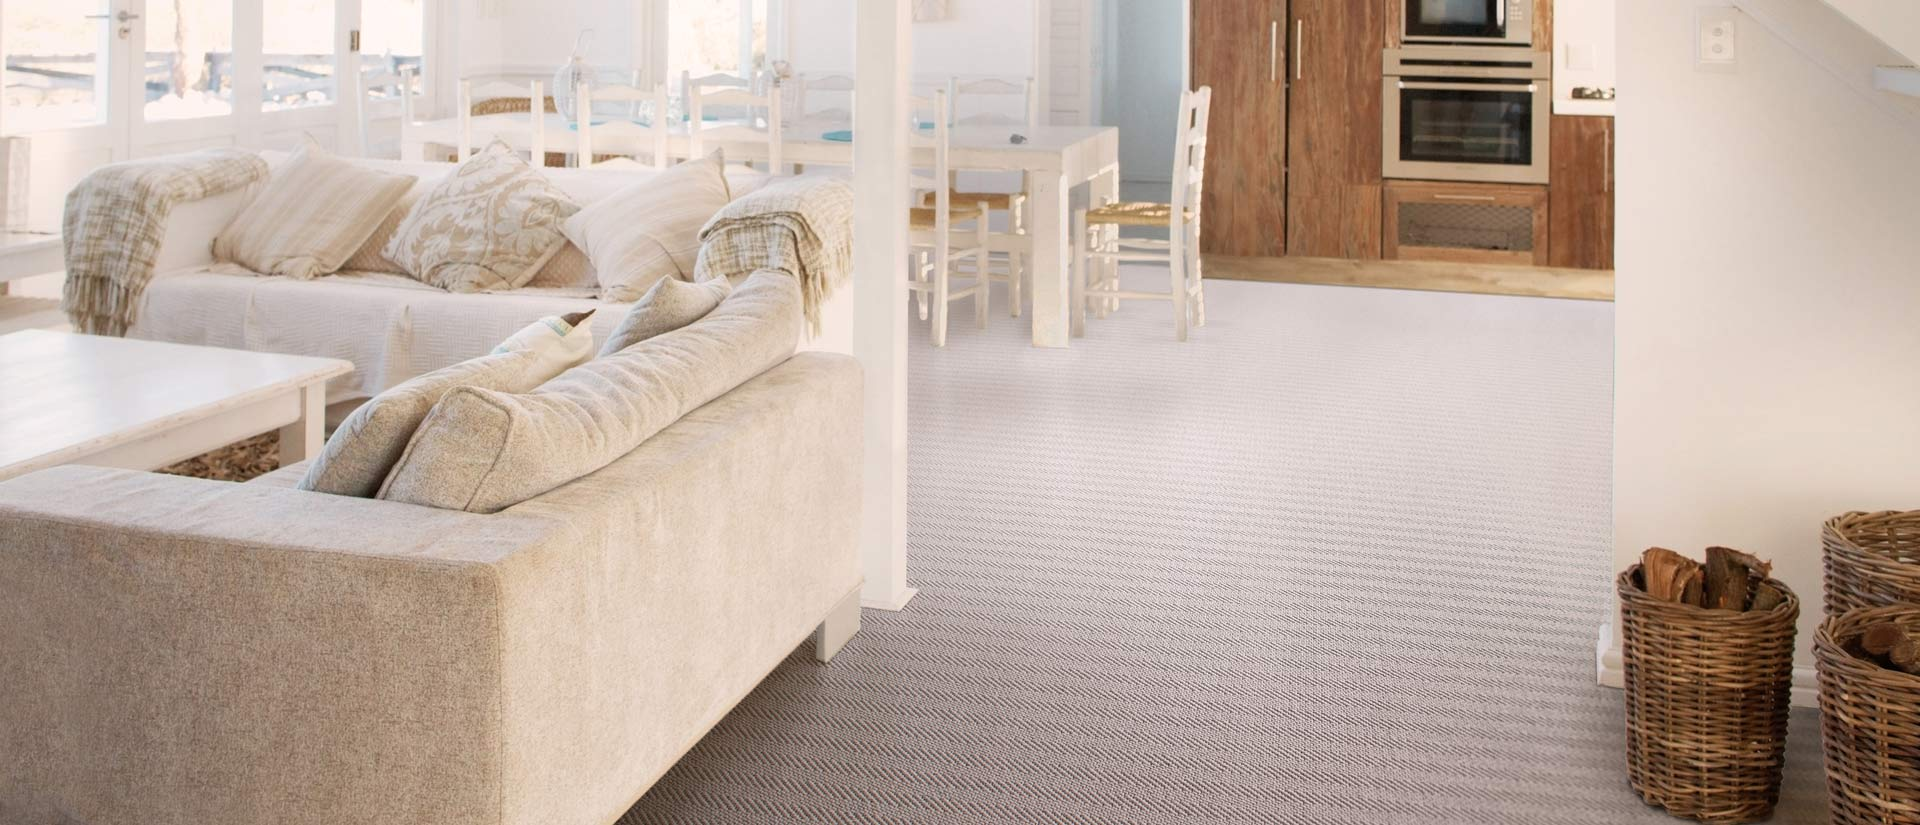 claremont herringbone carpets